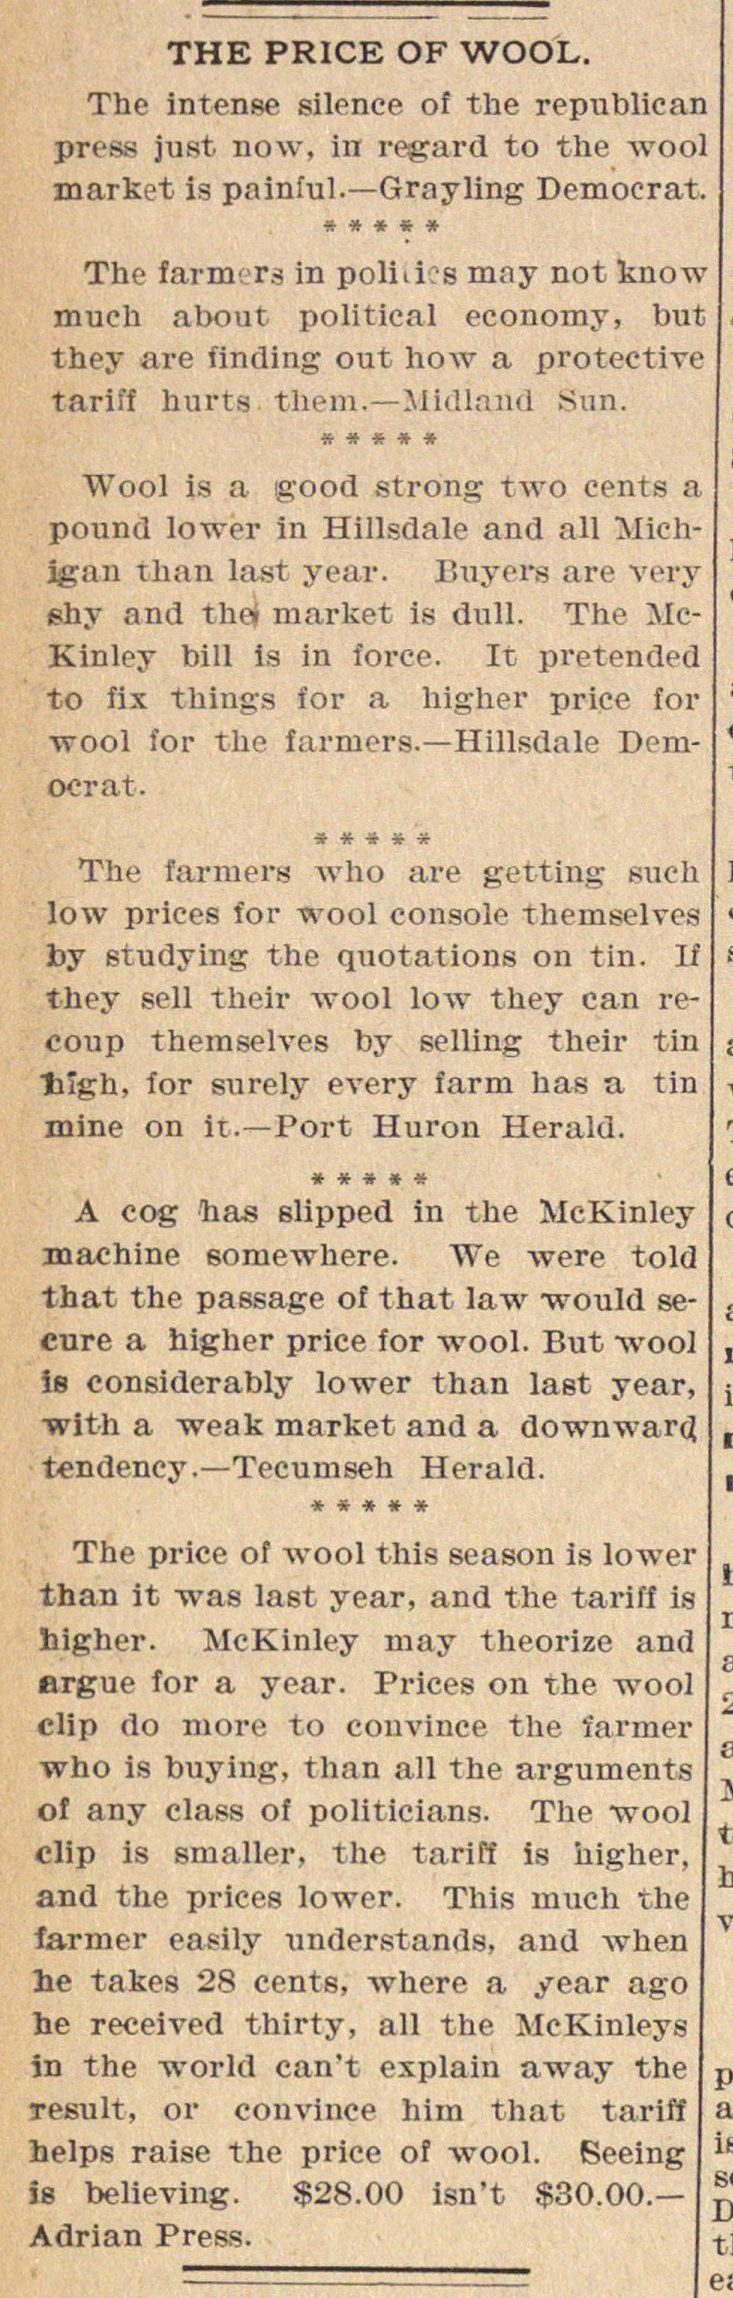 The Price Of Wool image